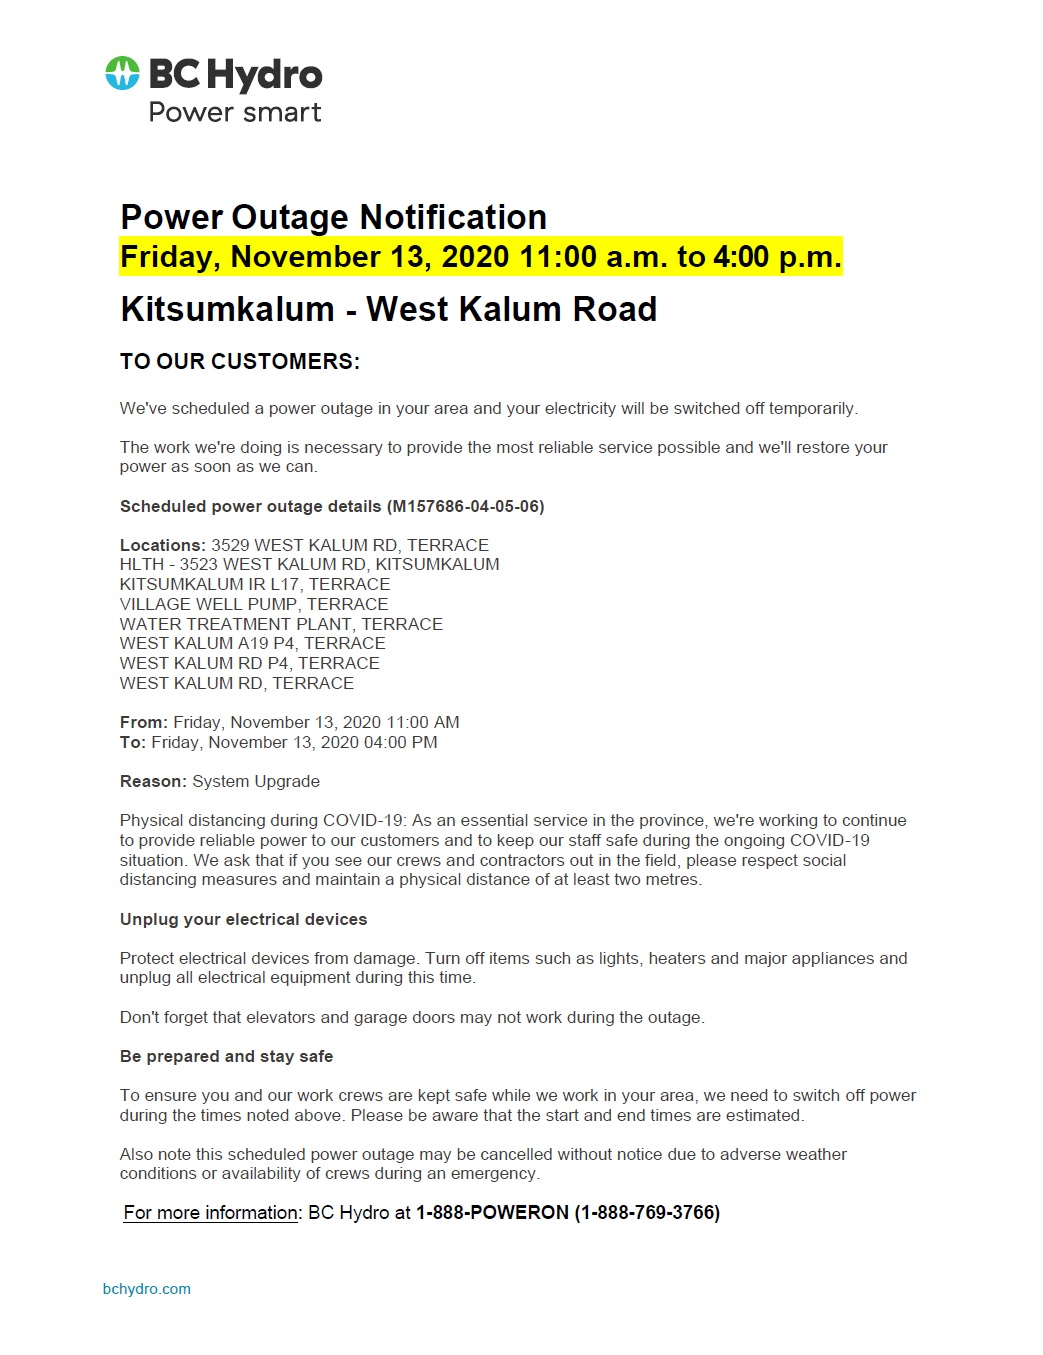 Power Outage Rescheduled to November 13th – West Kalum Road